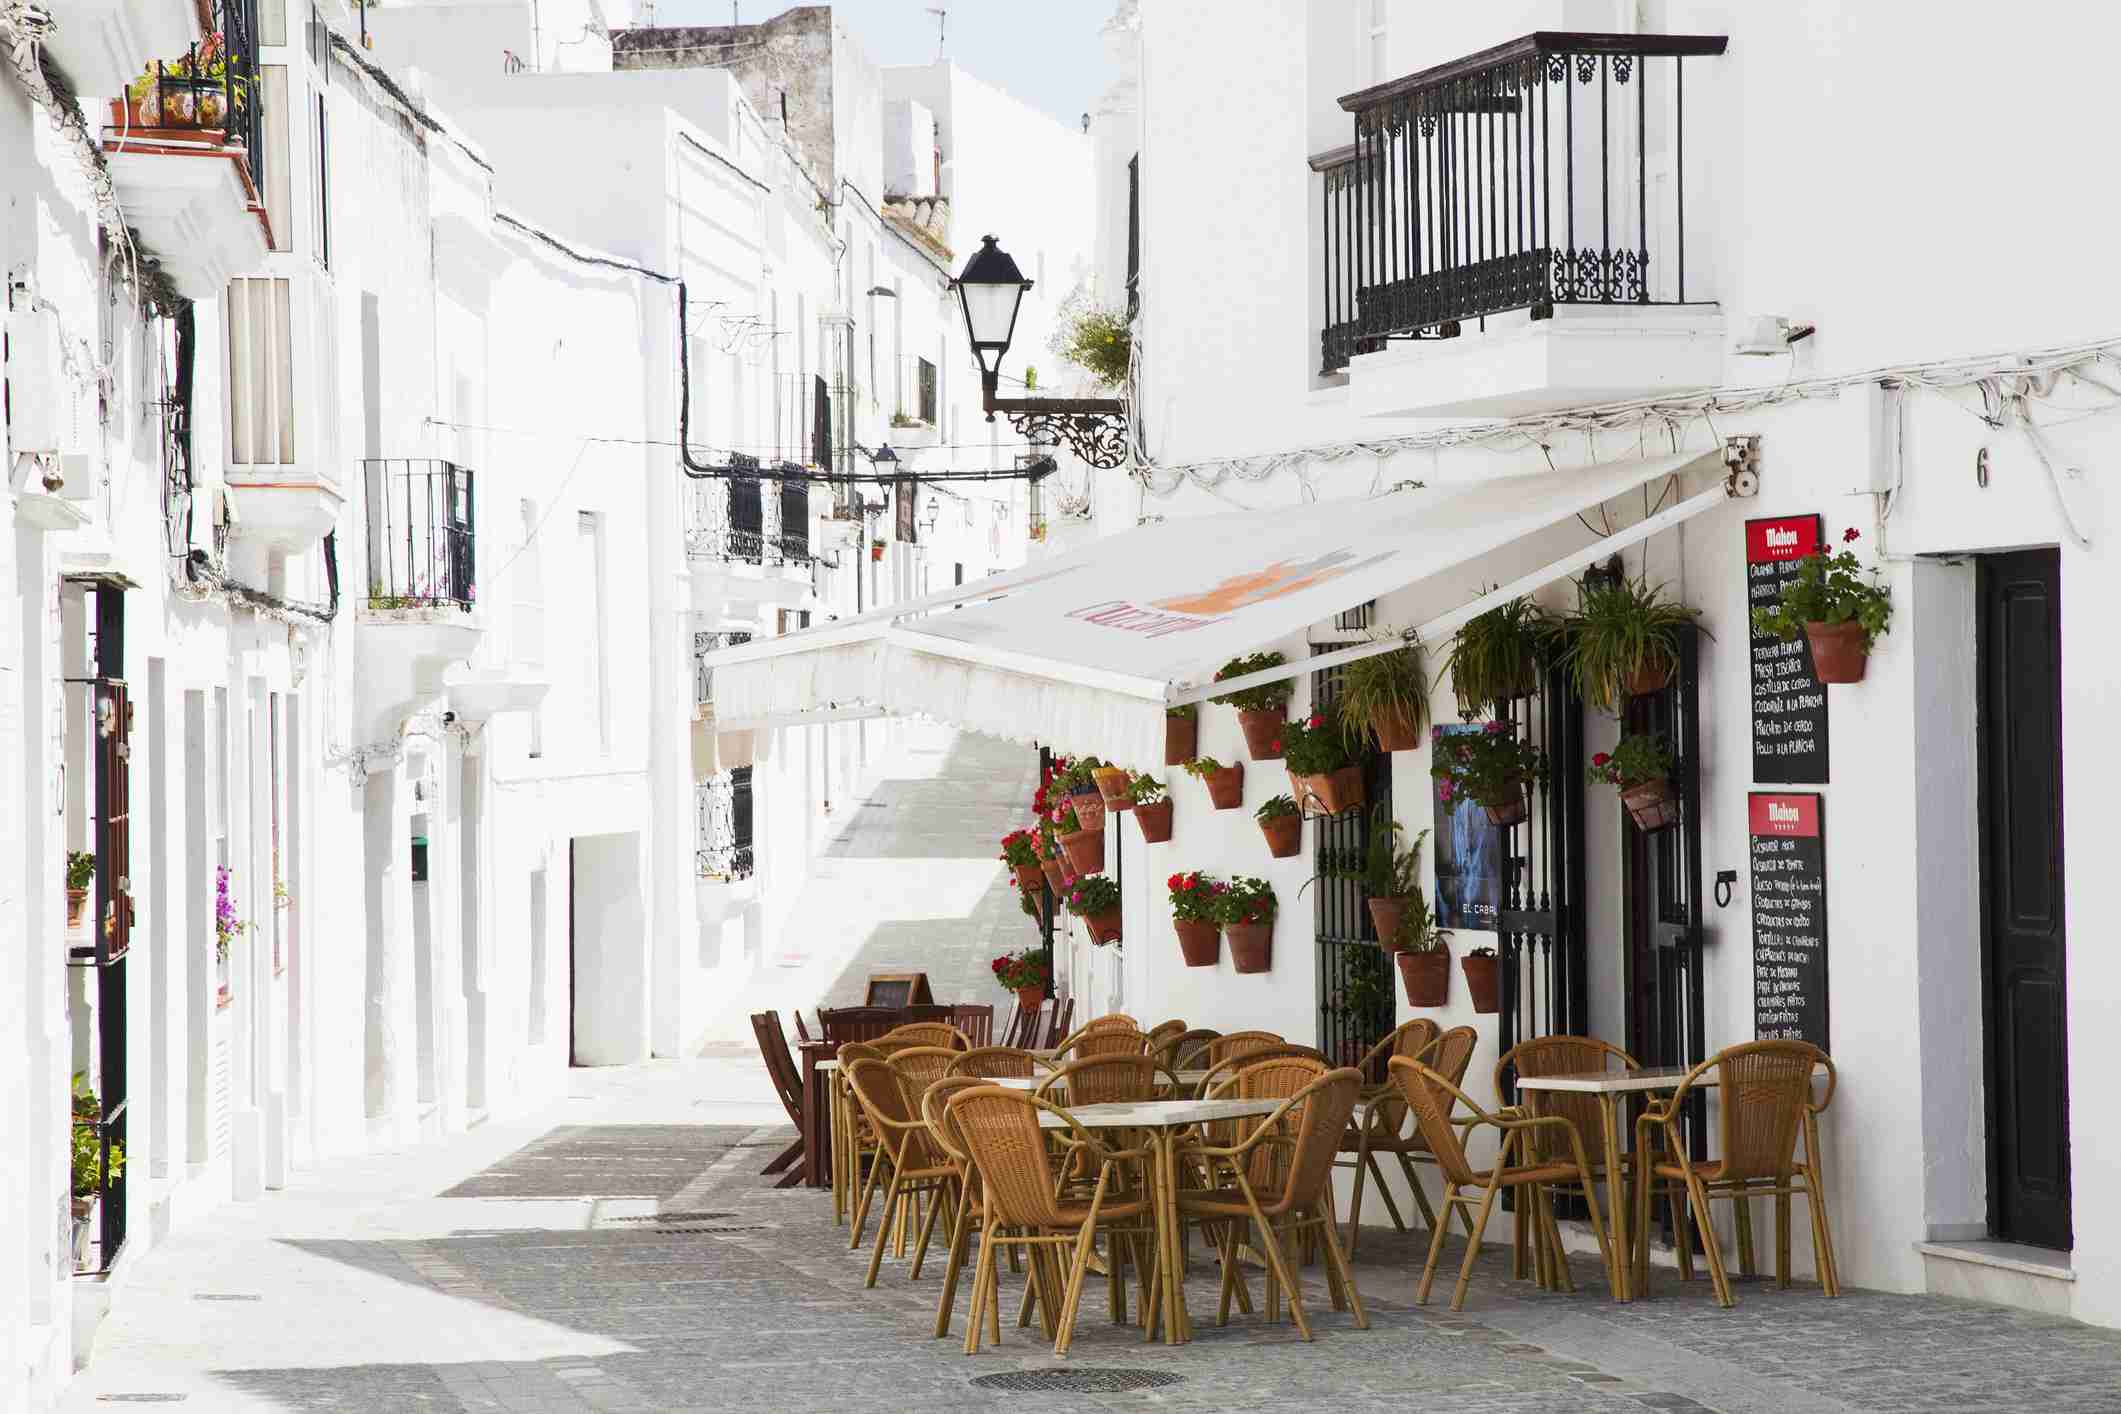 An outdoor cafe in Andalusia